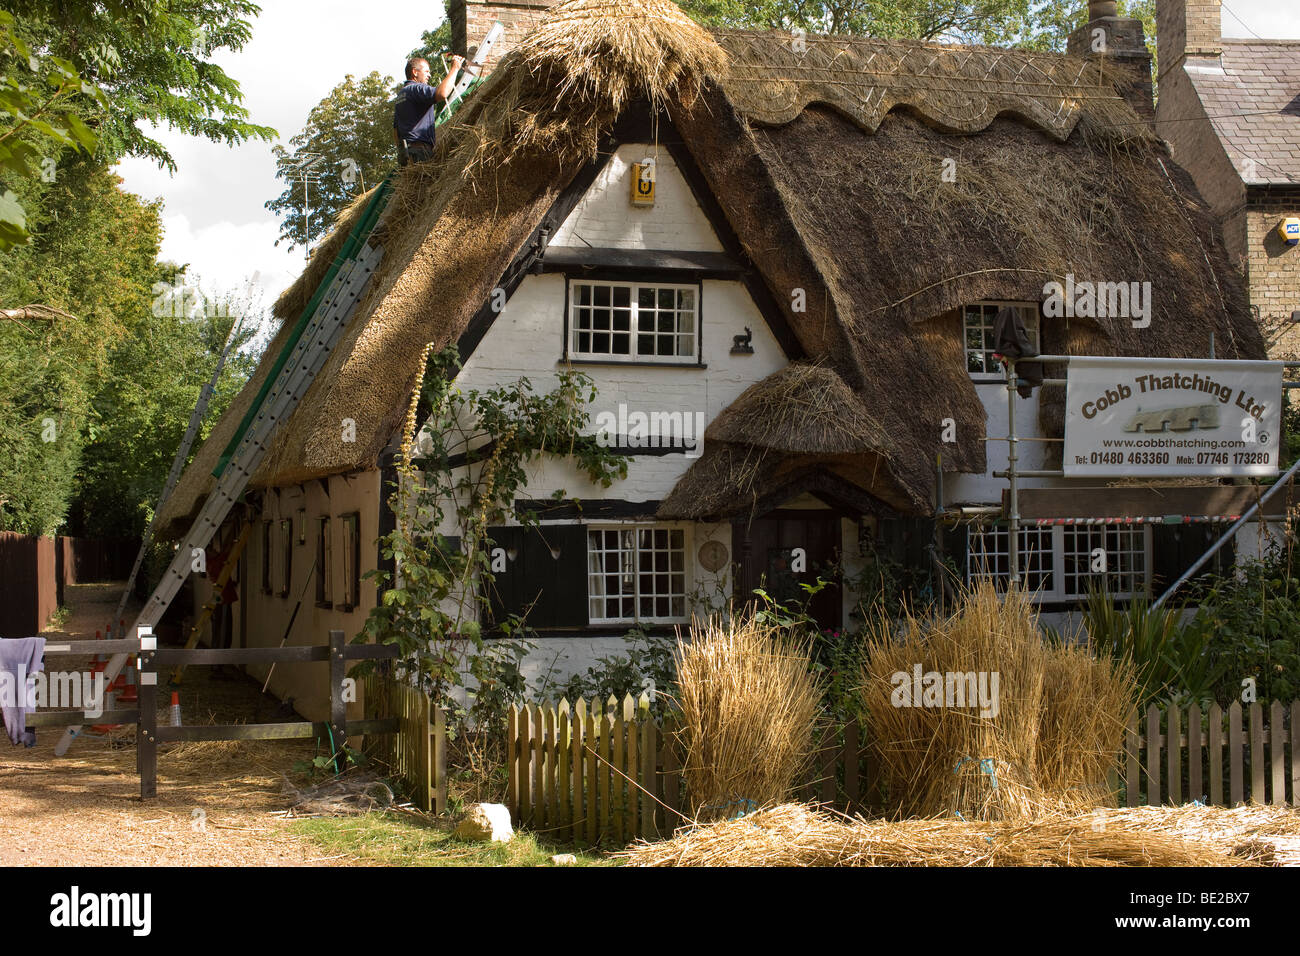 Cottage in the process of having thatch repaired with wheat straw. - Stock Image